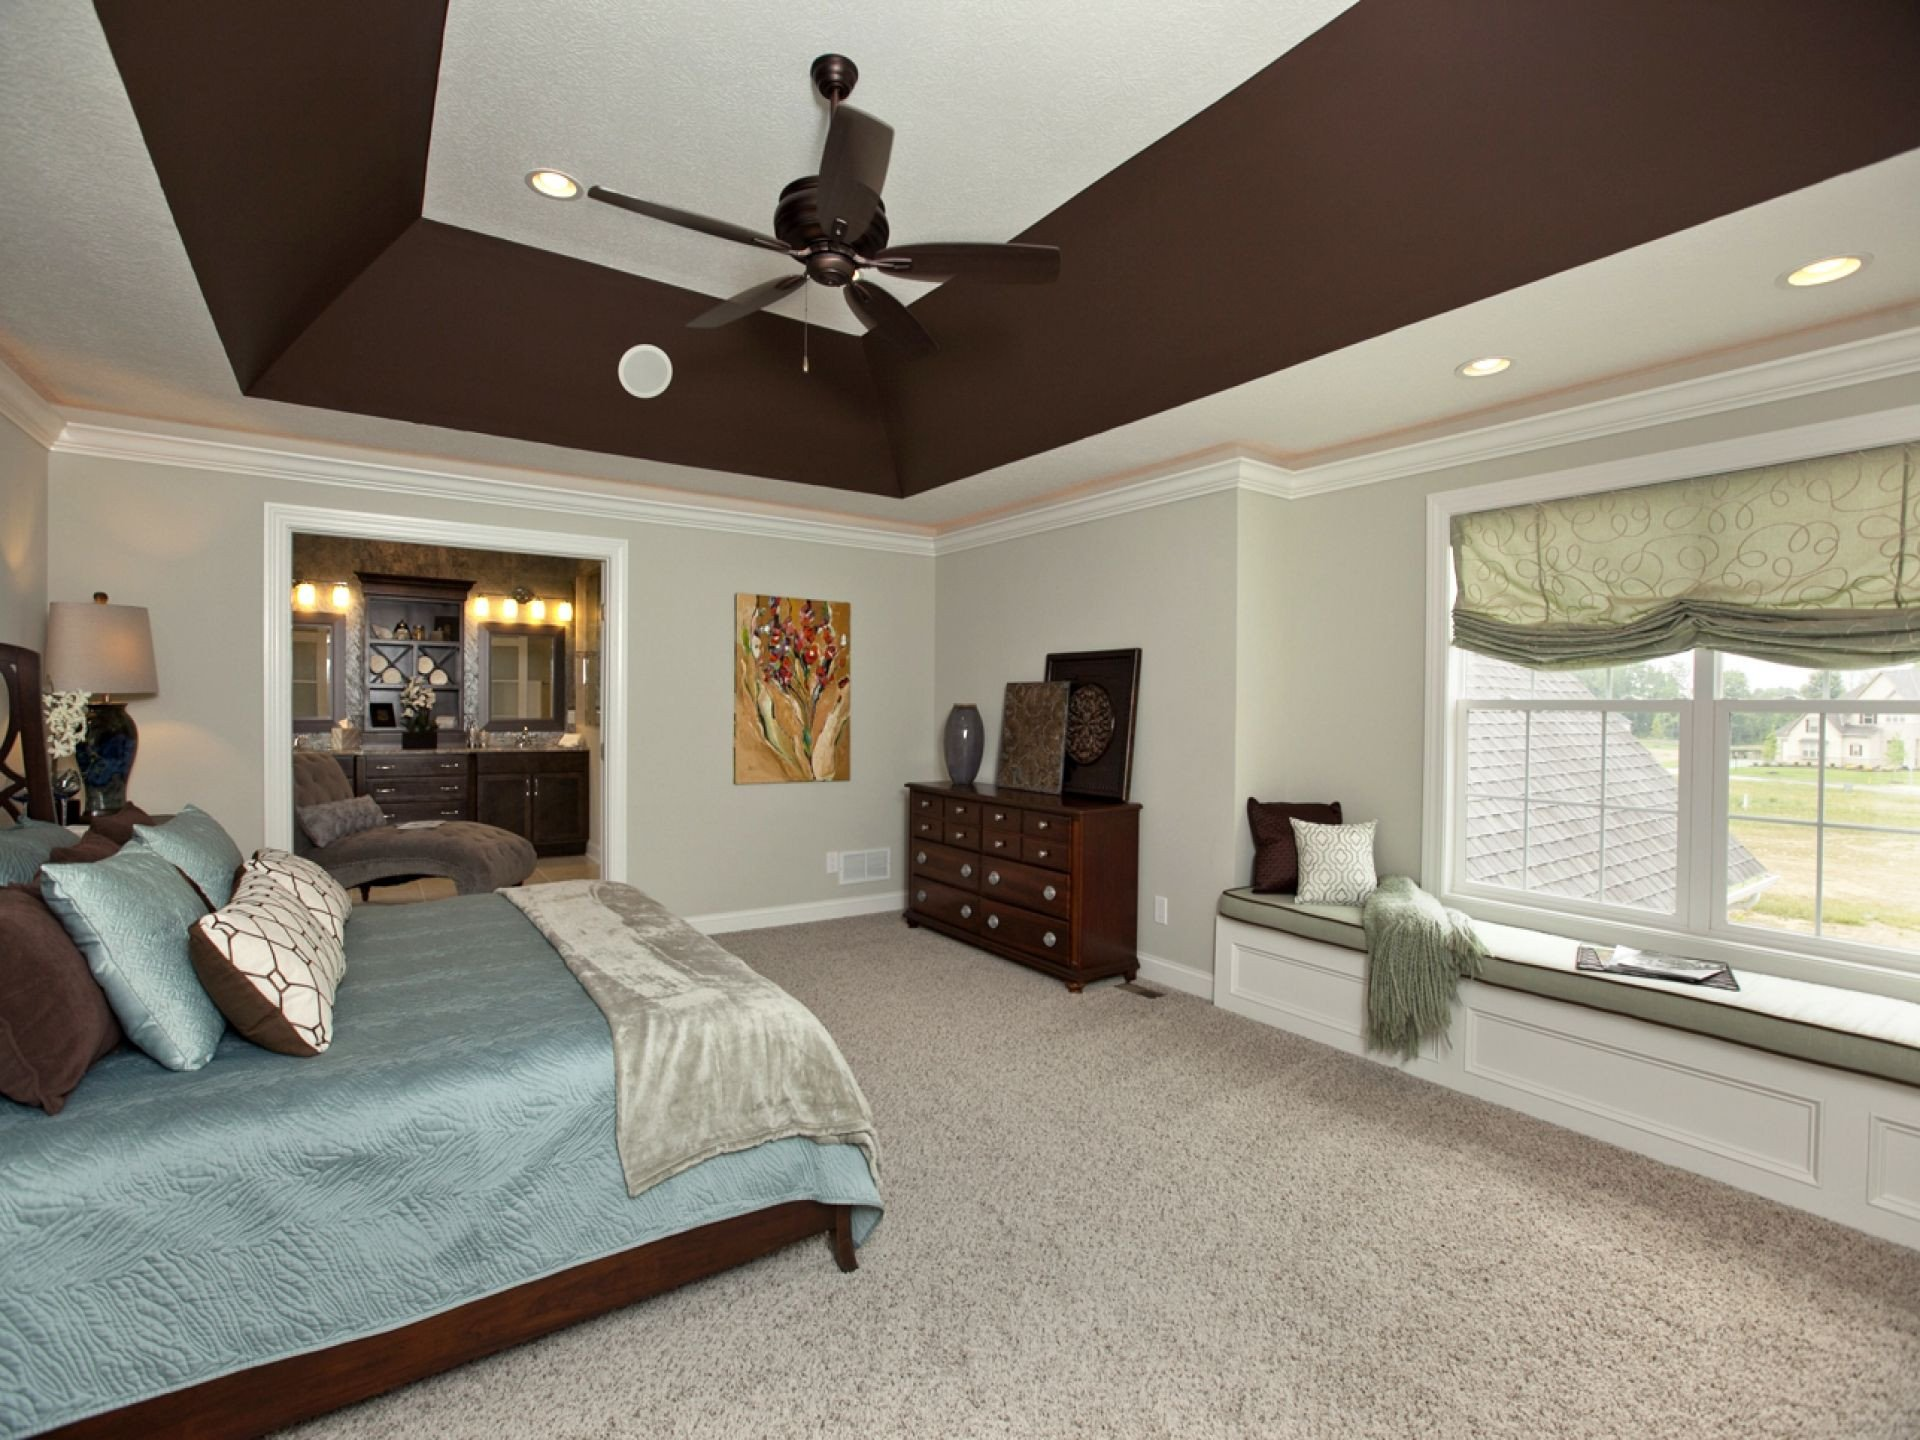 Sloped Ceiling Bedroom Ideas Luxury Deep Angled Tray Ceiling In Master Bedroom 3 Pillar Homes